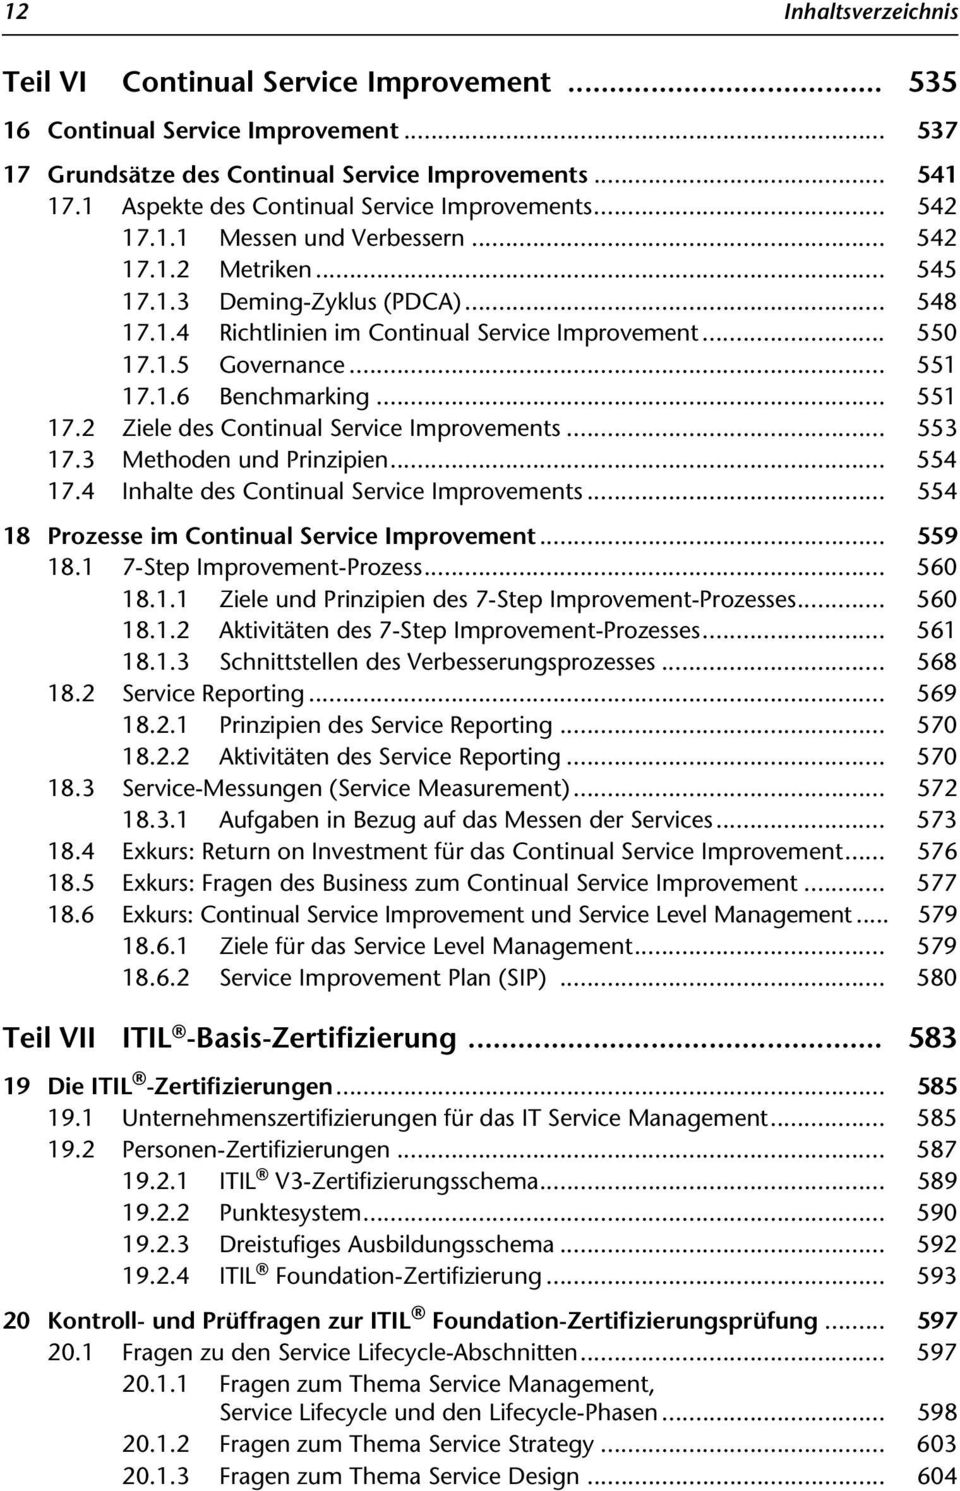 .. 550 17.1.5 Governance... 551 17.1.6 Benchmarking... 551 17.2 Ziele des Continual Service Improvements... 553 17.3 Methoden und Prinzipien... 554 17.4 Inhalte des Continual Service Improvements.